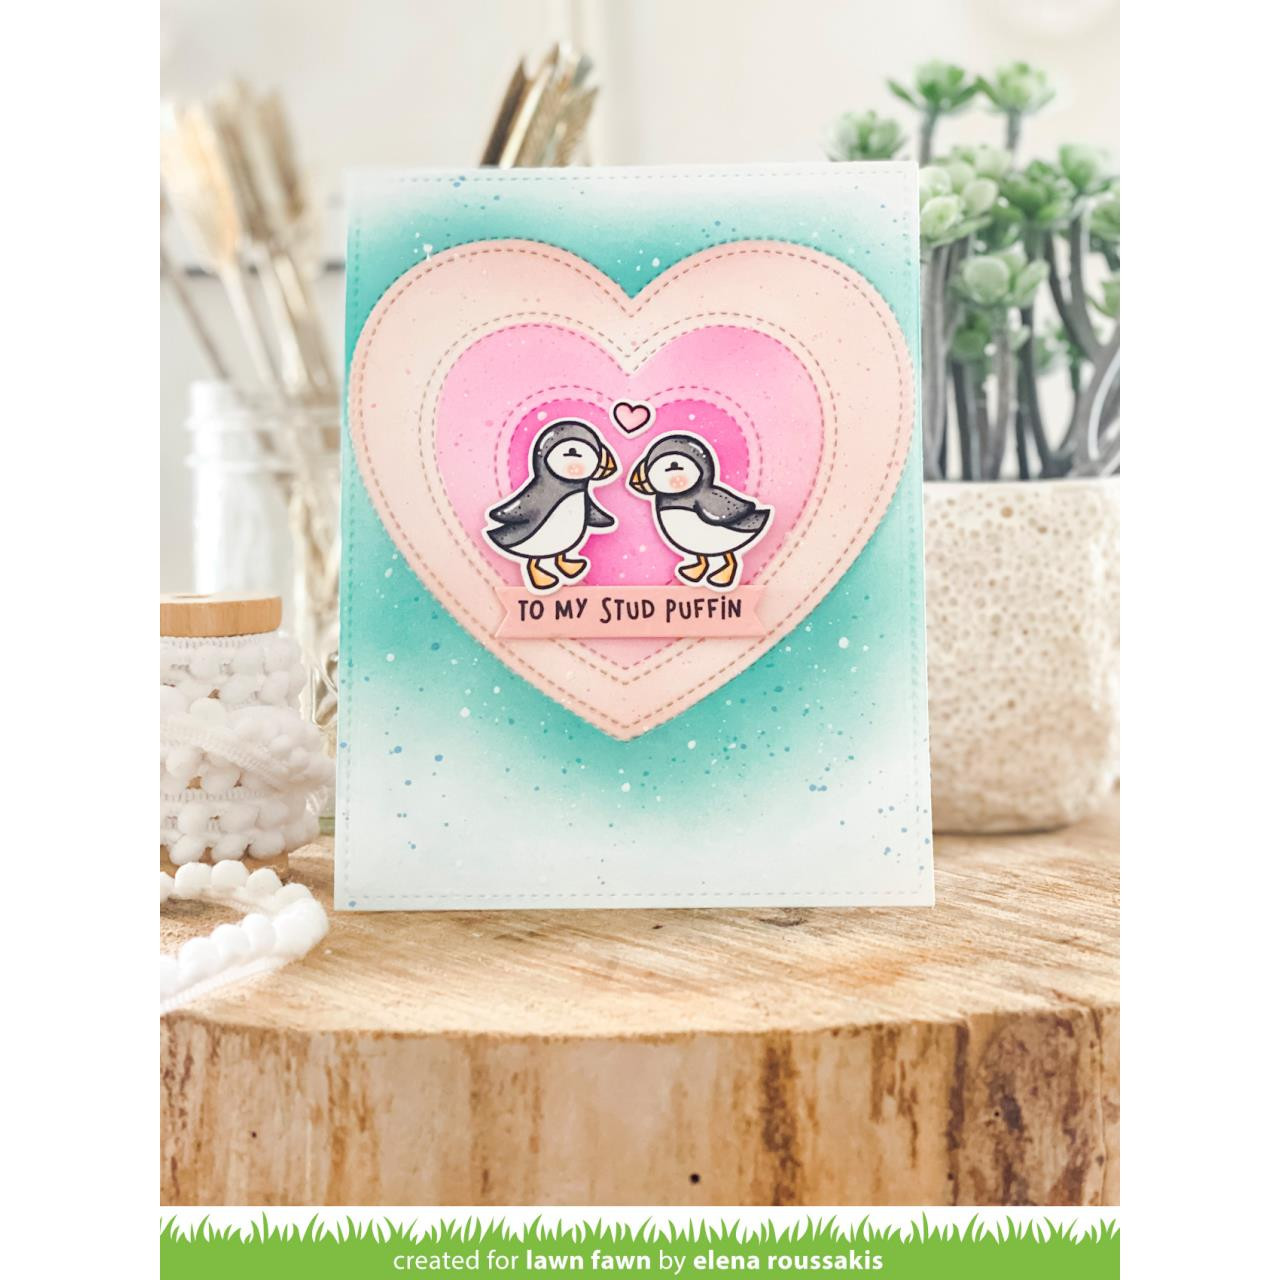 Stud Puffin, Lawn Fawn Clear Stamps - 035292674141